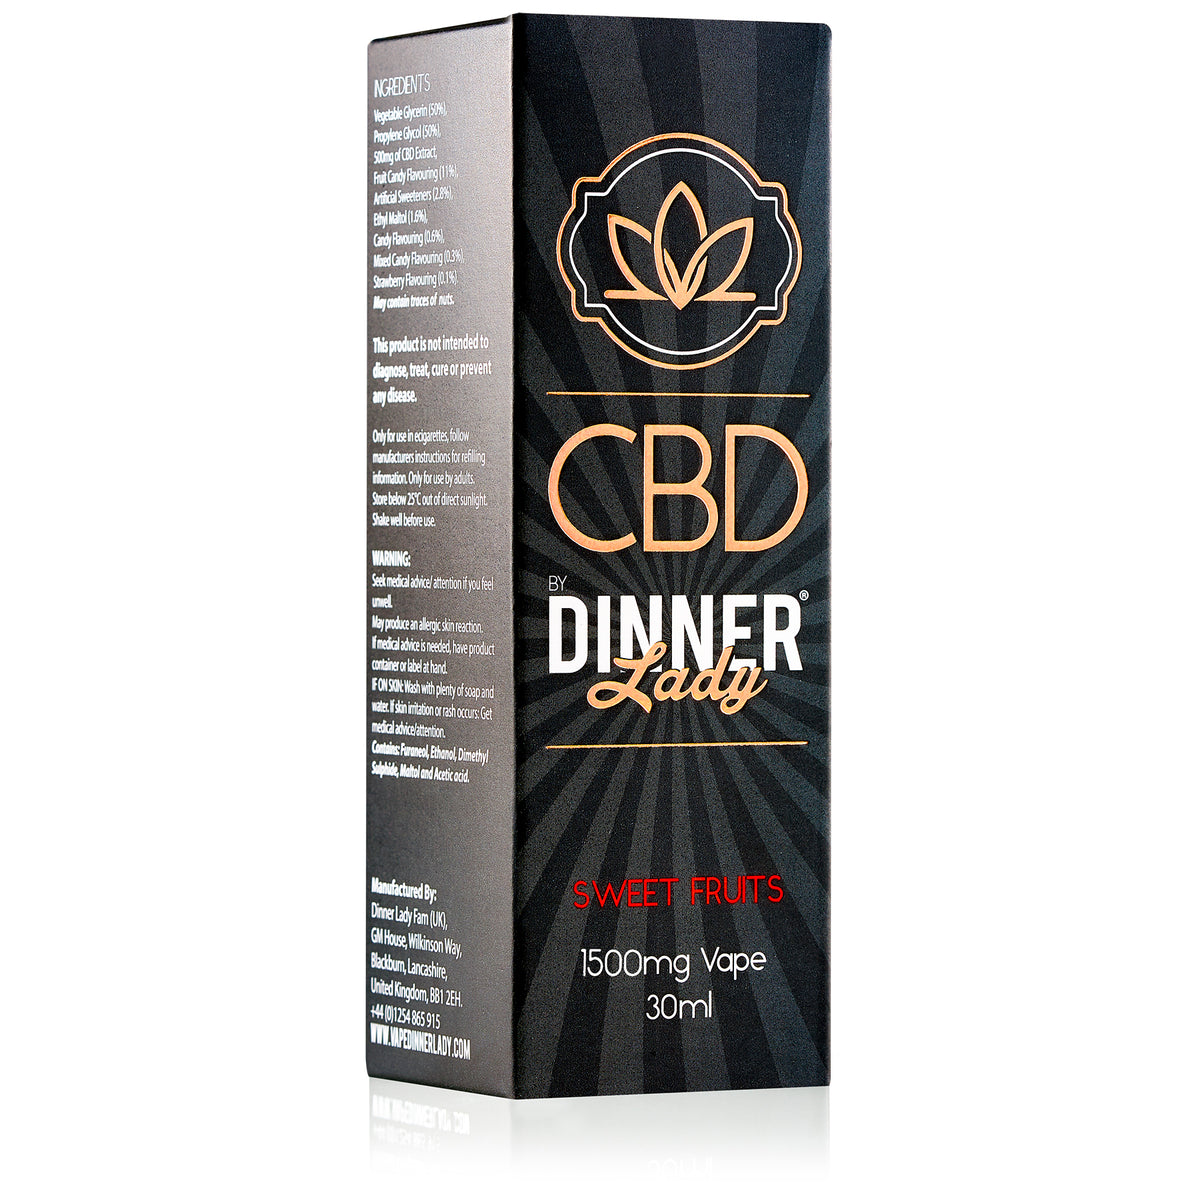 DINNER LADY CBD - SWEET FRUITS VAPE 30ML